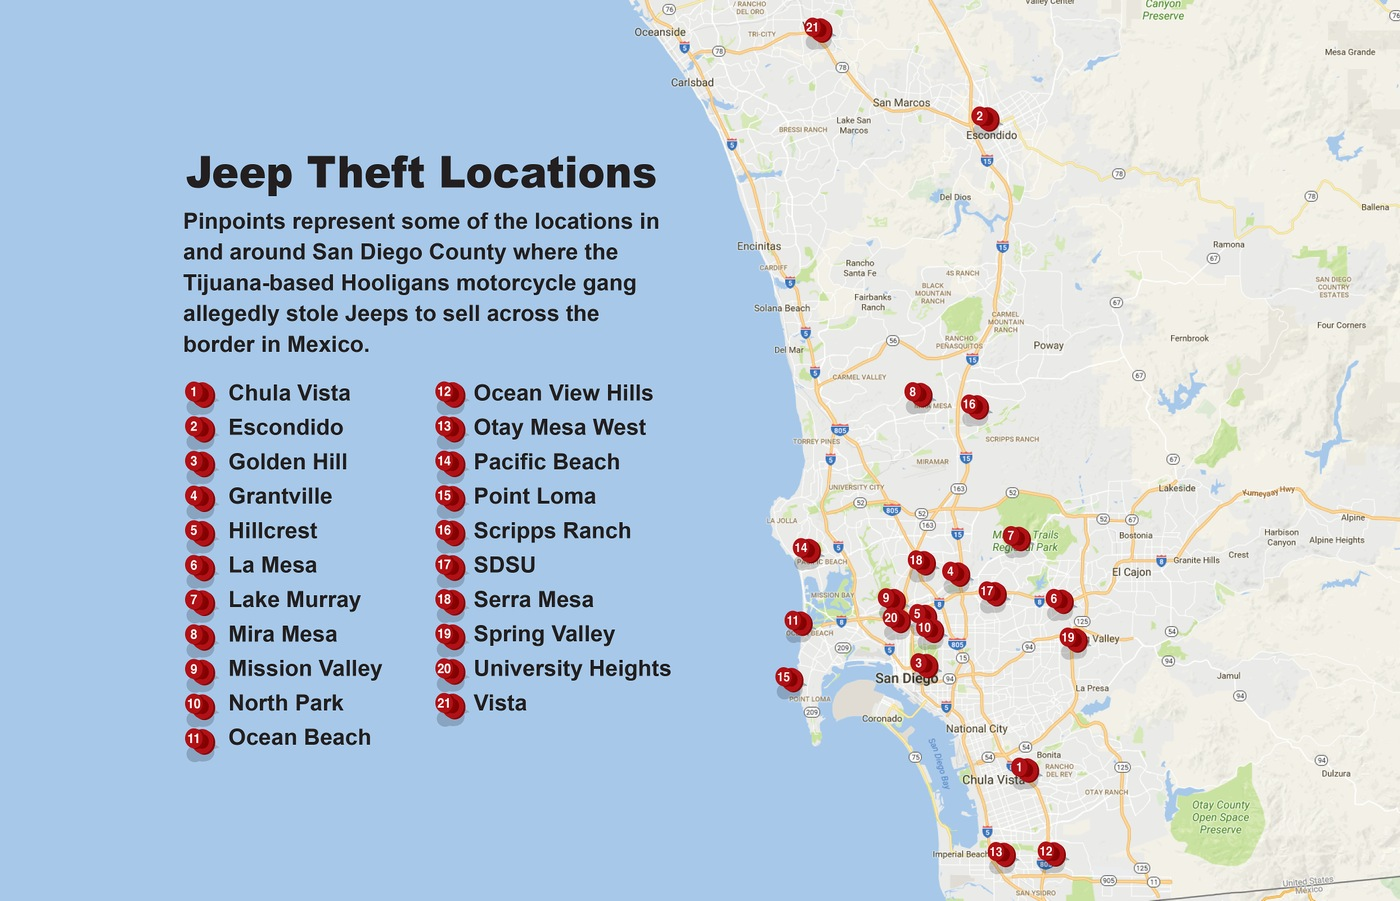 Map showing locations in the San Diego area where the Hooligans motorcycle gang committed 21 of their Jeep thefts, including Chula Vista, Escondido, Golden Hill, Grantville, Hillcrest, La Mesa, Lake Murray, Mira Mesa, Mission Valley, North Park, Ocean Beach, Ocean View Hills, Otay Mesa West, Pacific Beach, Point Loma, Scripps Ranch, San Diego State University, Serra Mesa, Spring Valley, University Heights, and Vista.